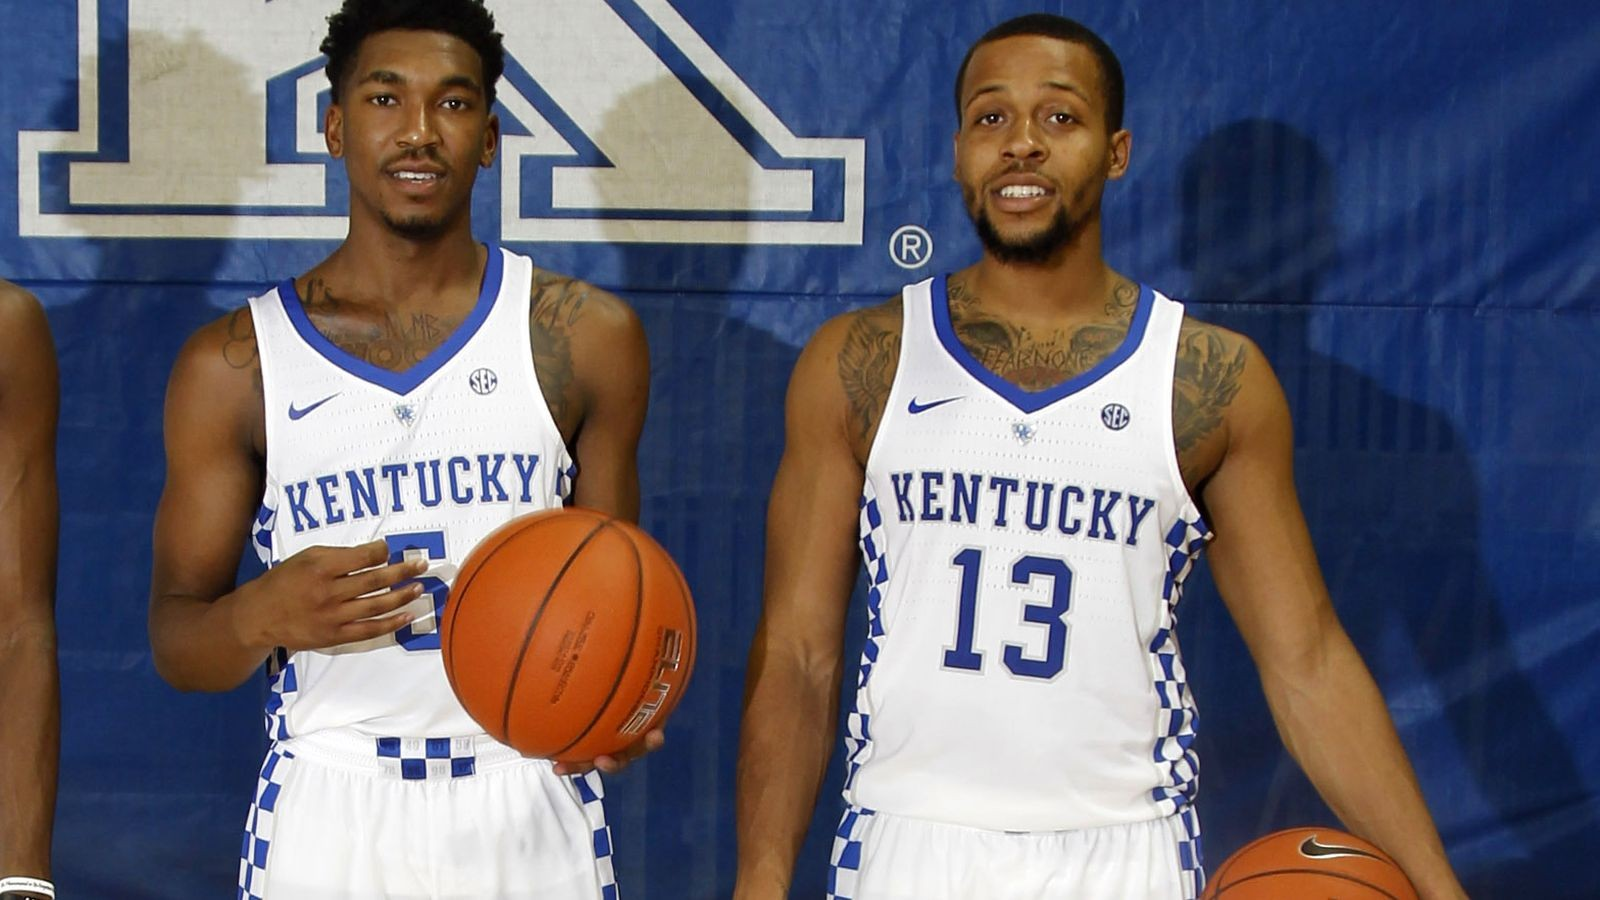 ae0917f2984 Kentucky Basketball picked to win SEC  Isaiah Briscoe and Malik Monk earn  All-SEC honors